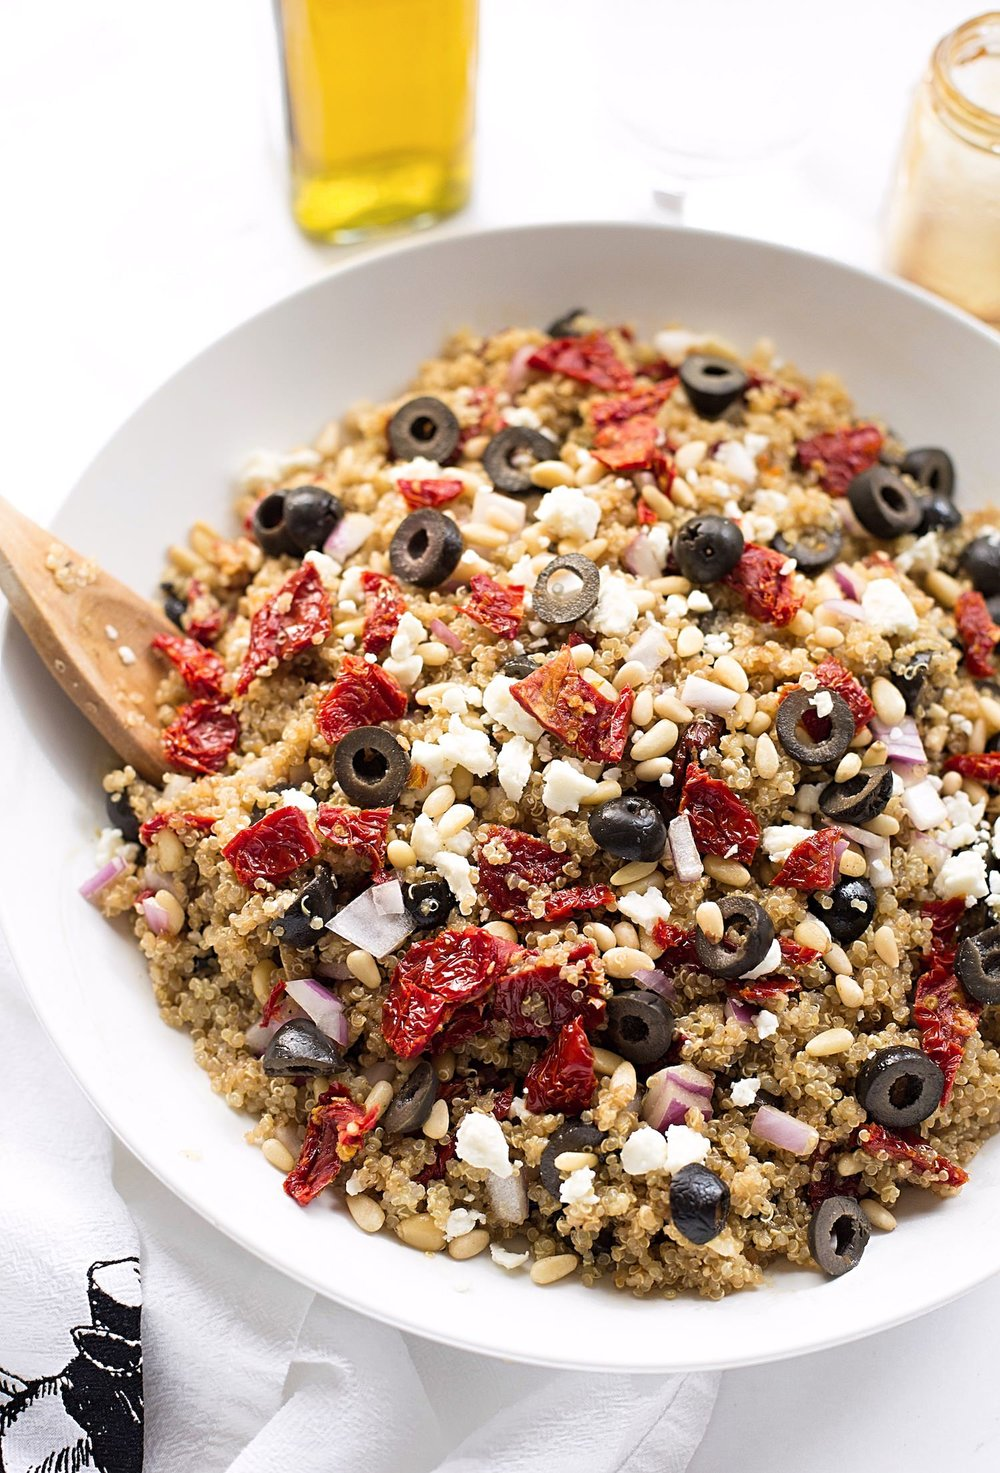 Greek Quinoa Salad: this delicious quinoa salad is made with black olives, red onions, sun-dried tomatoes, feta, pine nuts, and an olive oil, soy, garlic dressing. | TrufflesandTrends.com